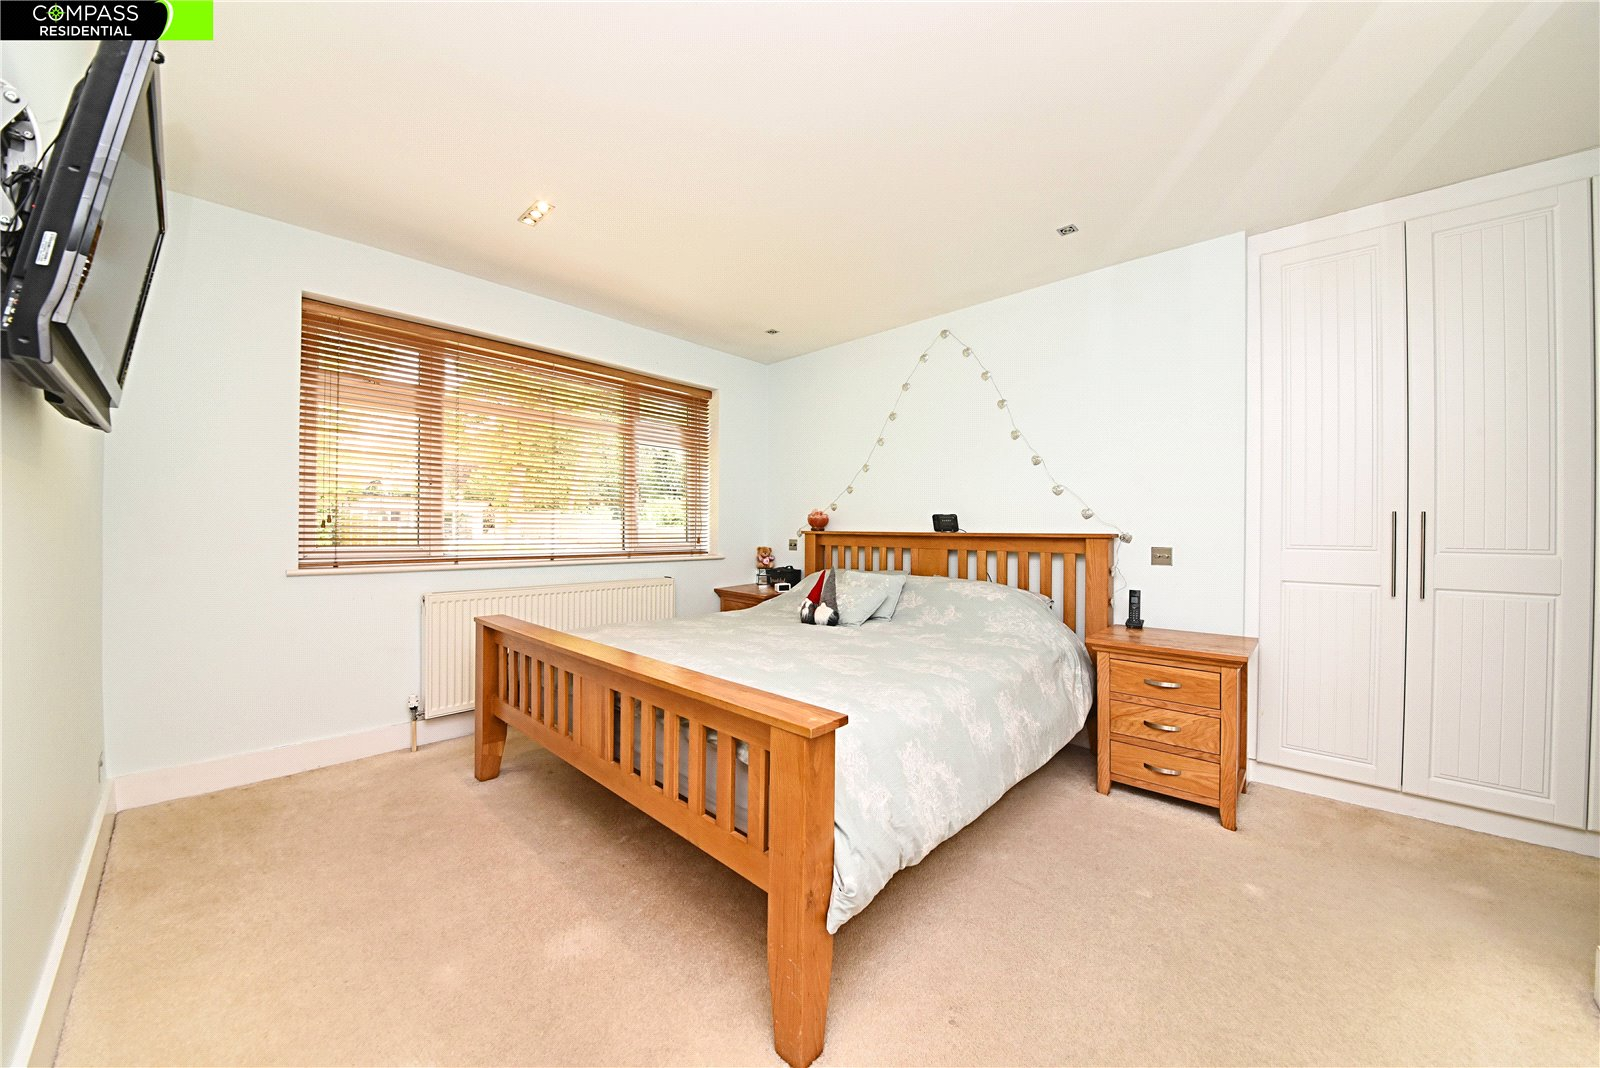 4 bed house for sale in Stanmore, HA7 3AZ  - Property Image 10